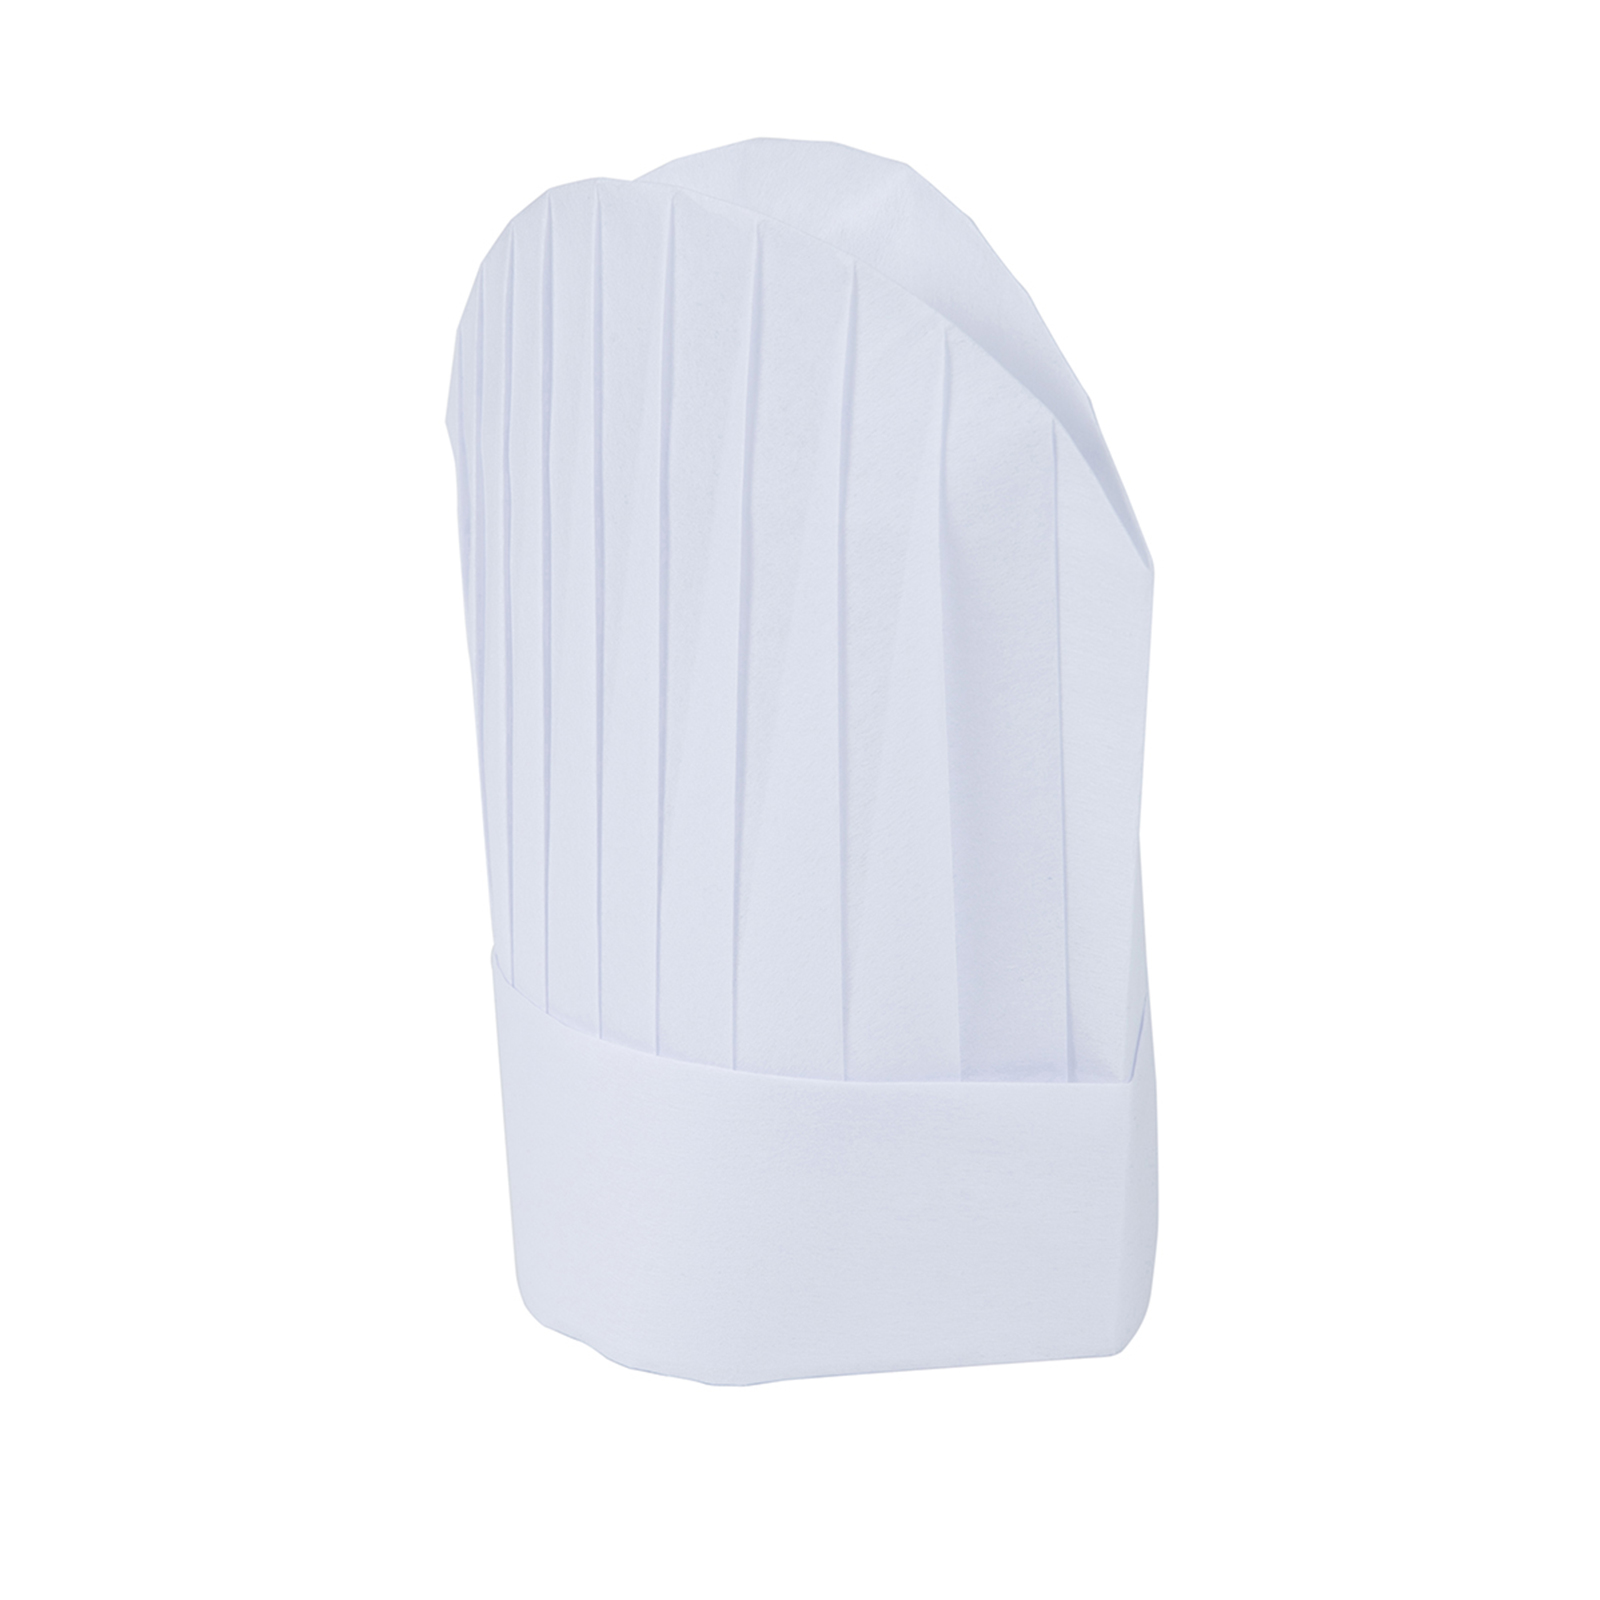 Mercer Culinary M61160WH Disposable Chef's Hat